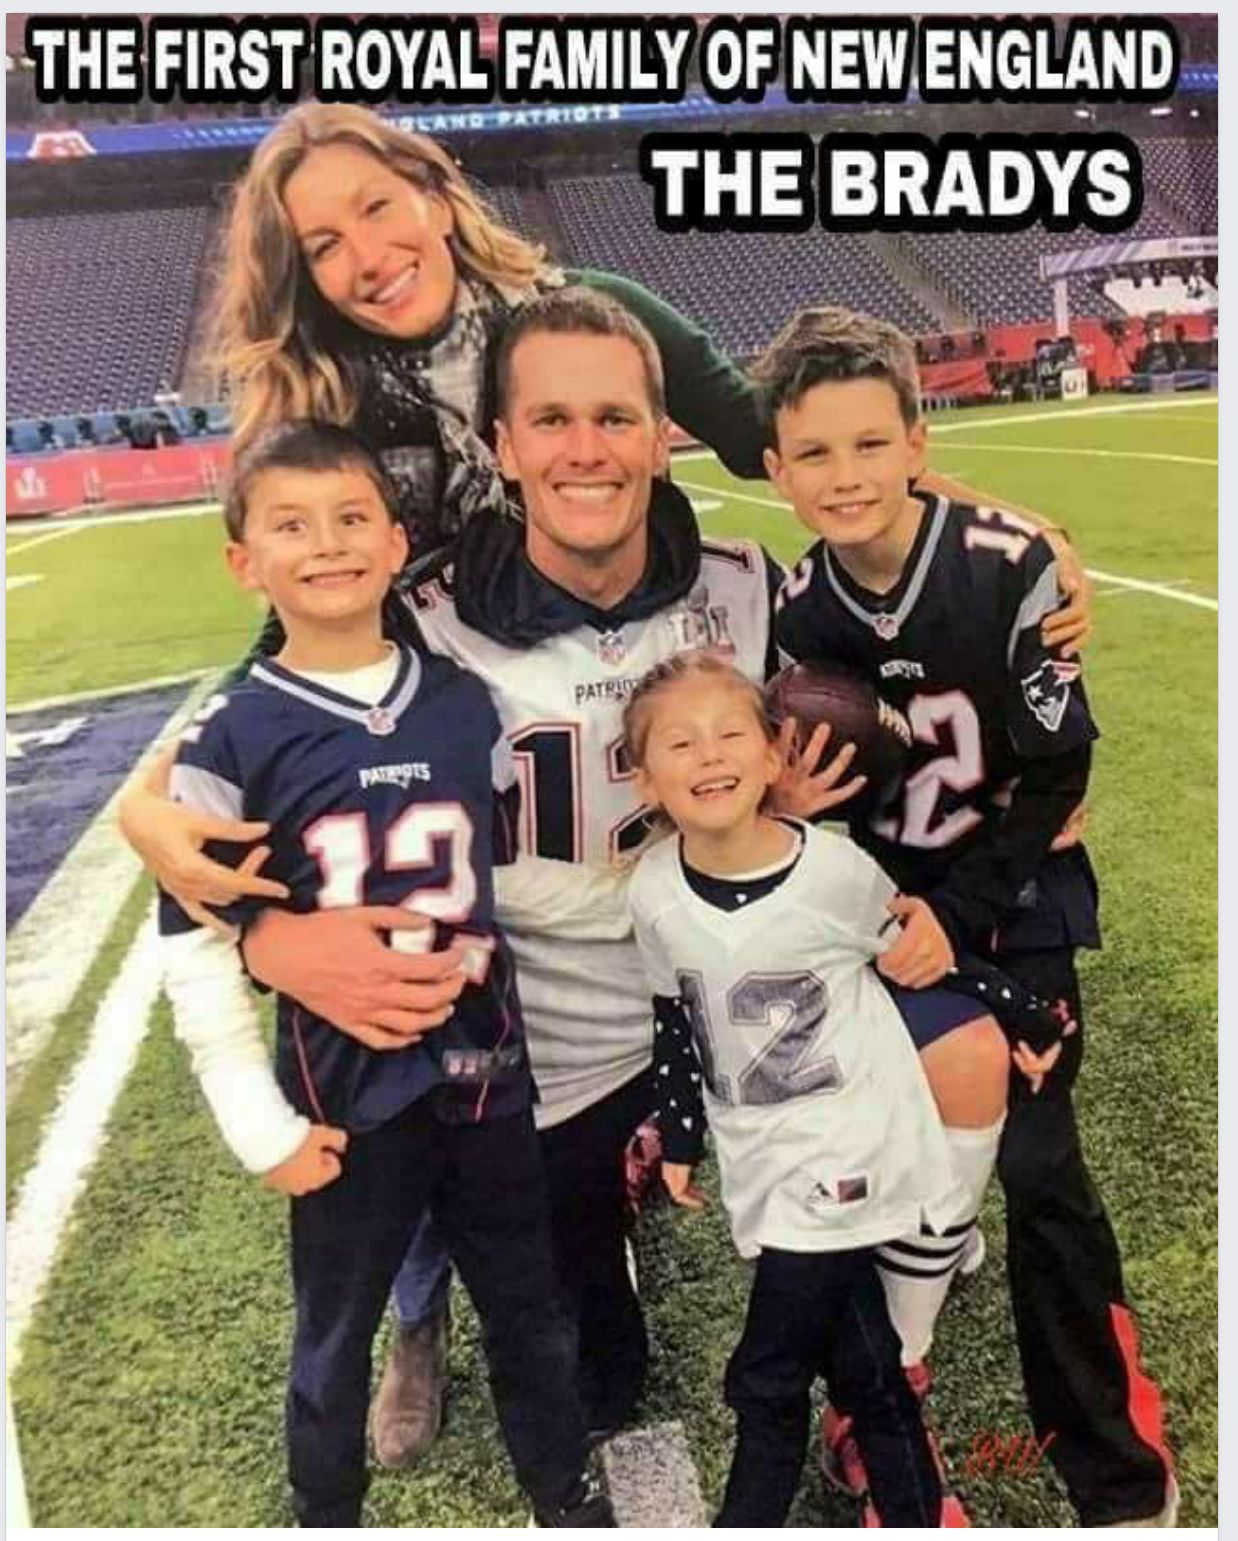 Pin By Brady Gillis On Sports With Images New England Patriots Football New England Patriots Tom Brady